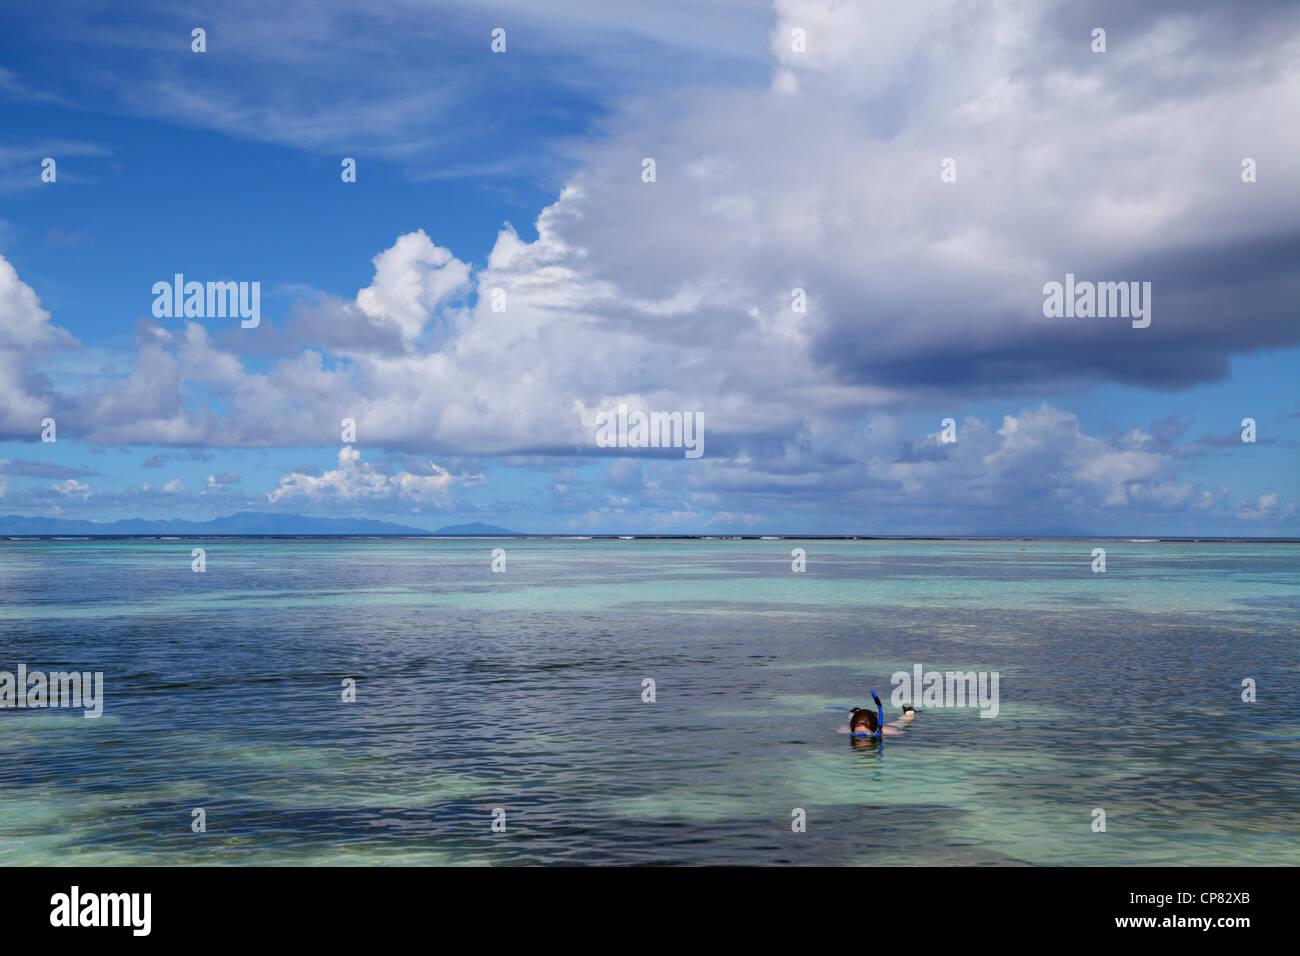 Woman snorkeling at Anse Source D'Argent, La Digue, Seychelles, Indian Ocean on La Digue in the Seychelles - Stock Image